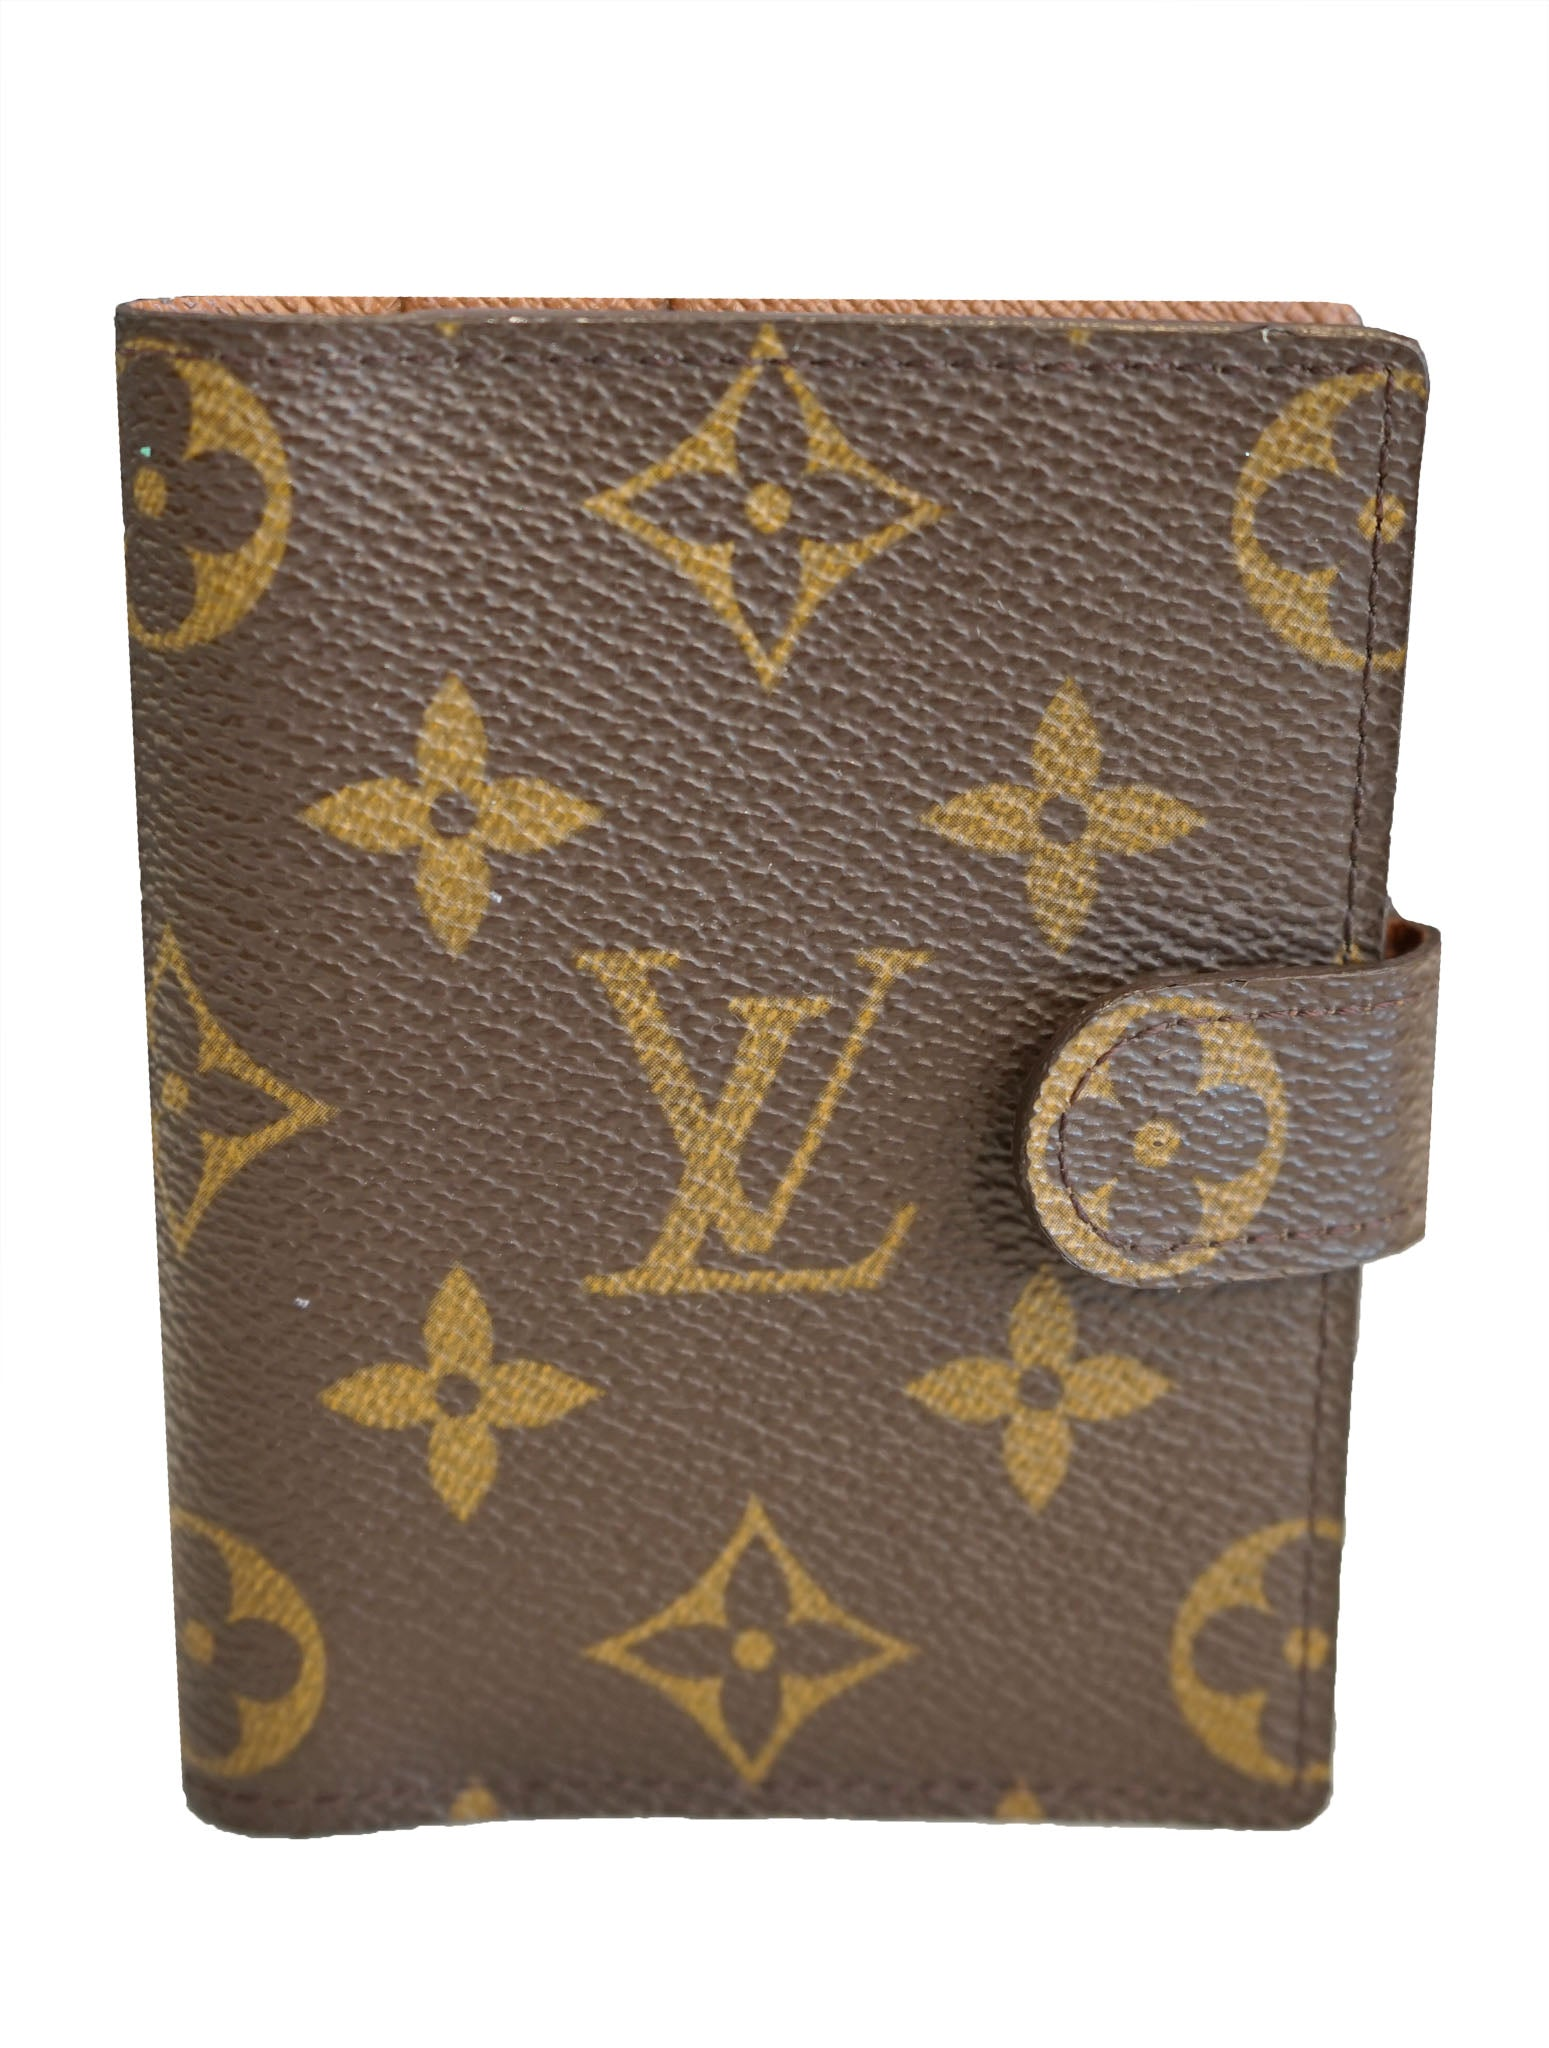 MONOGRAM CANVAS BUSINESS CARD HOLDER – Kidsstyleforless